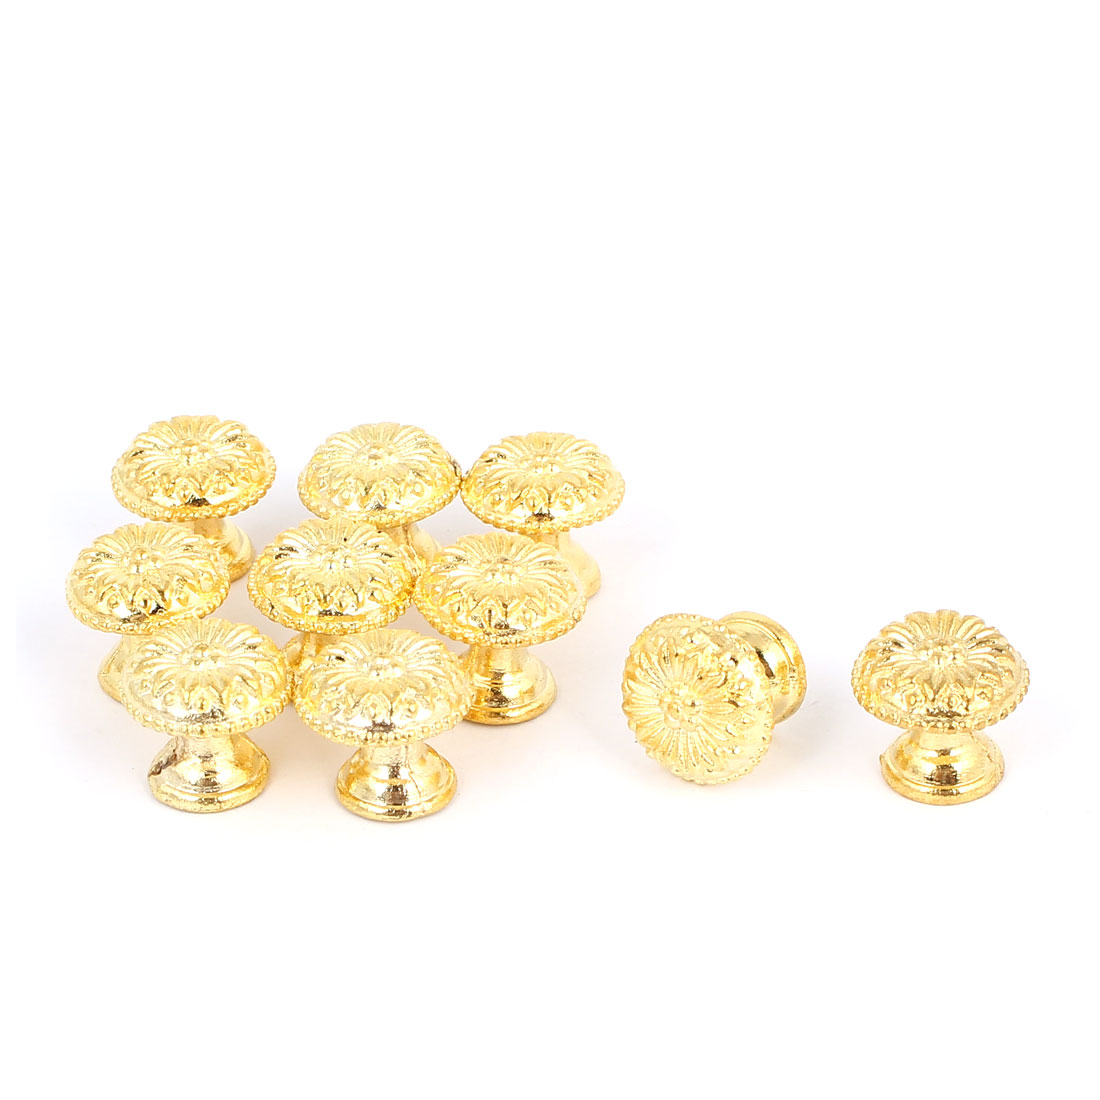 Door Drawer Zinc Alloy Retro Style Round Pull Handle Knob Gold Tone 17x16mm 10pcs